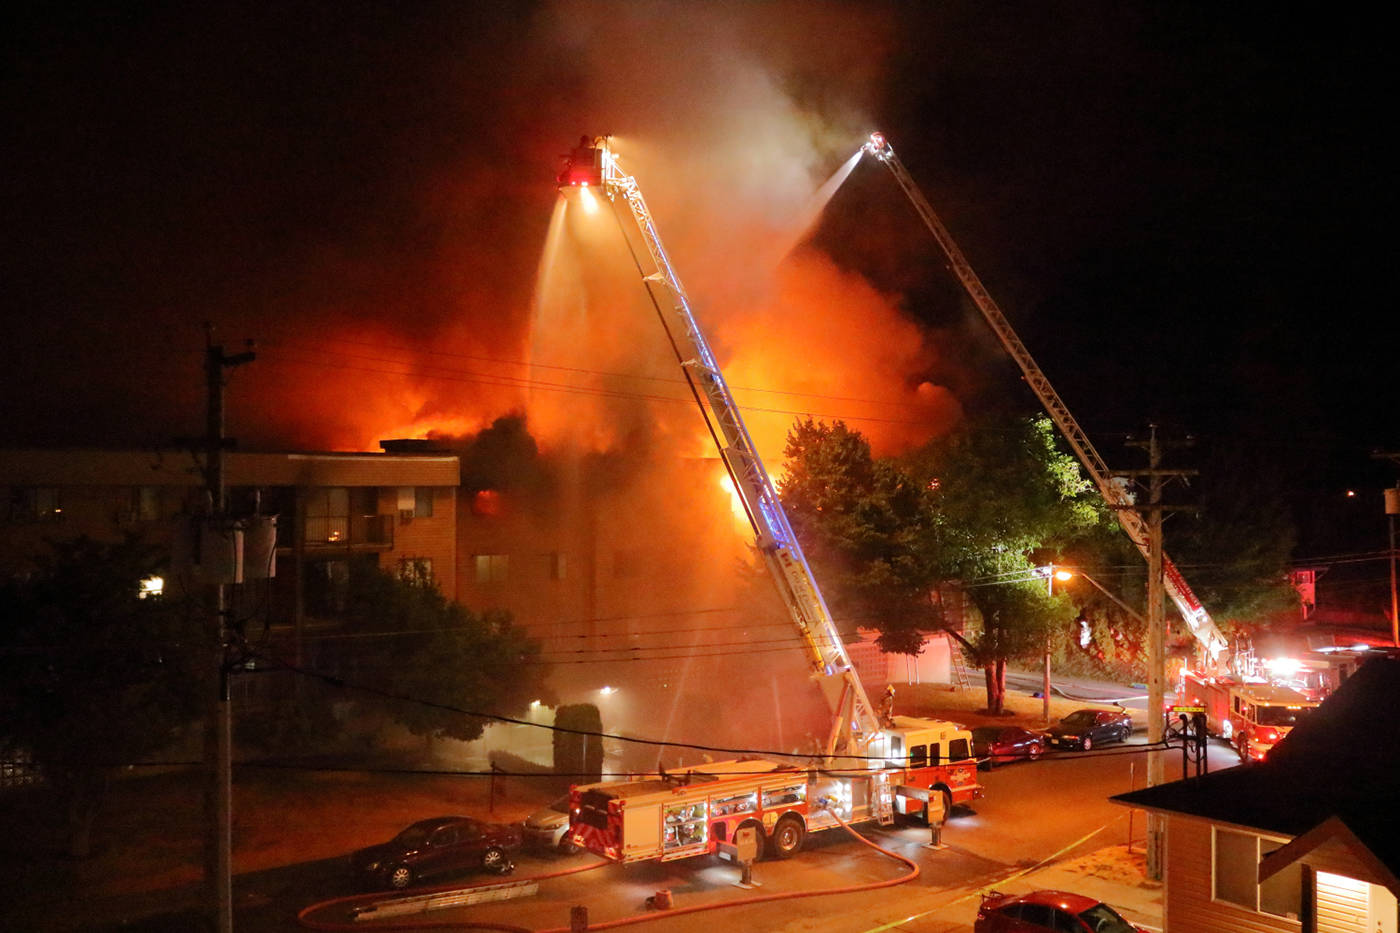 Chilliwack firefighters tackle a blaze at an apartment fire on Hazel Street in Chilliwack in the early hours of July 29, 2021. (Eric Buermeyer photo)